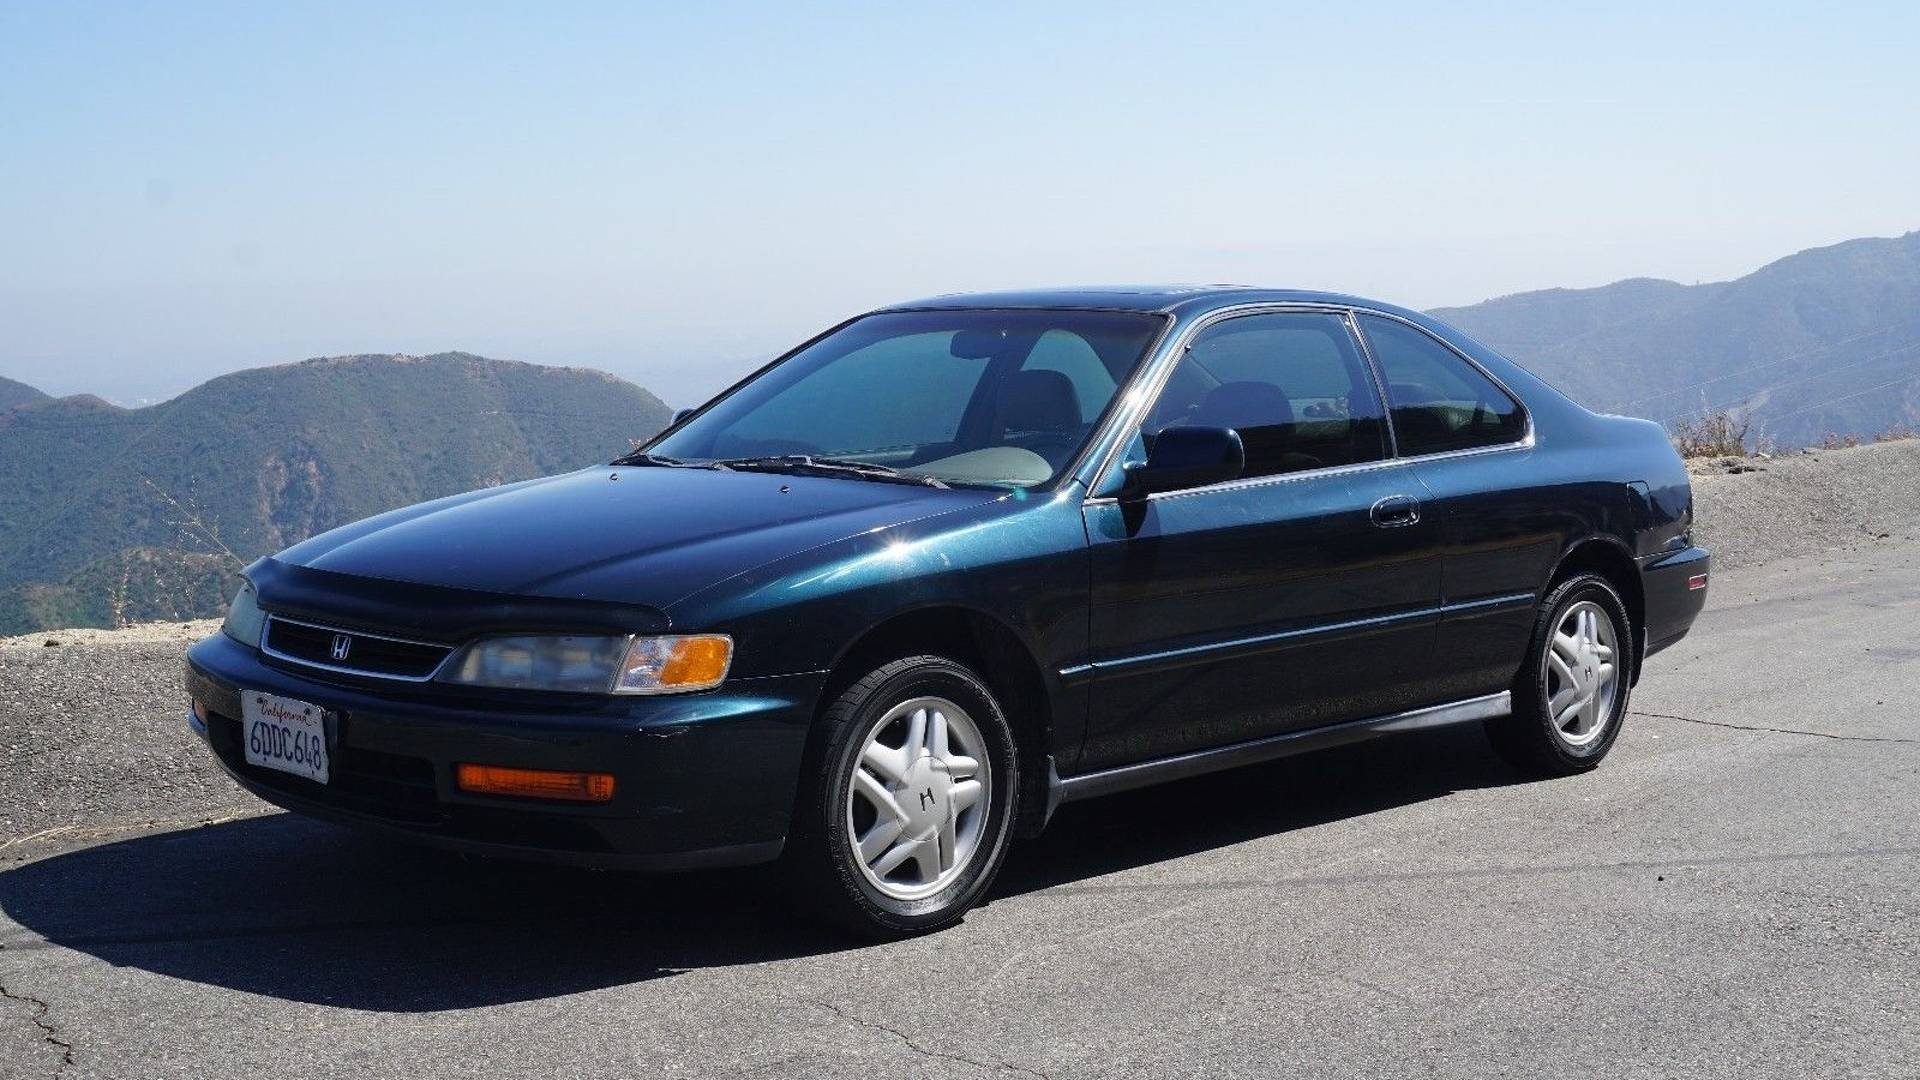 Honda Accord iz 1996. dostigla cenu novog modela! (video)